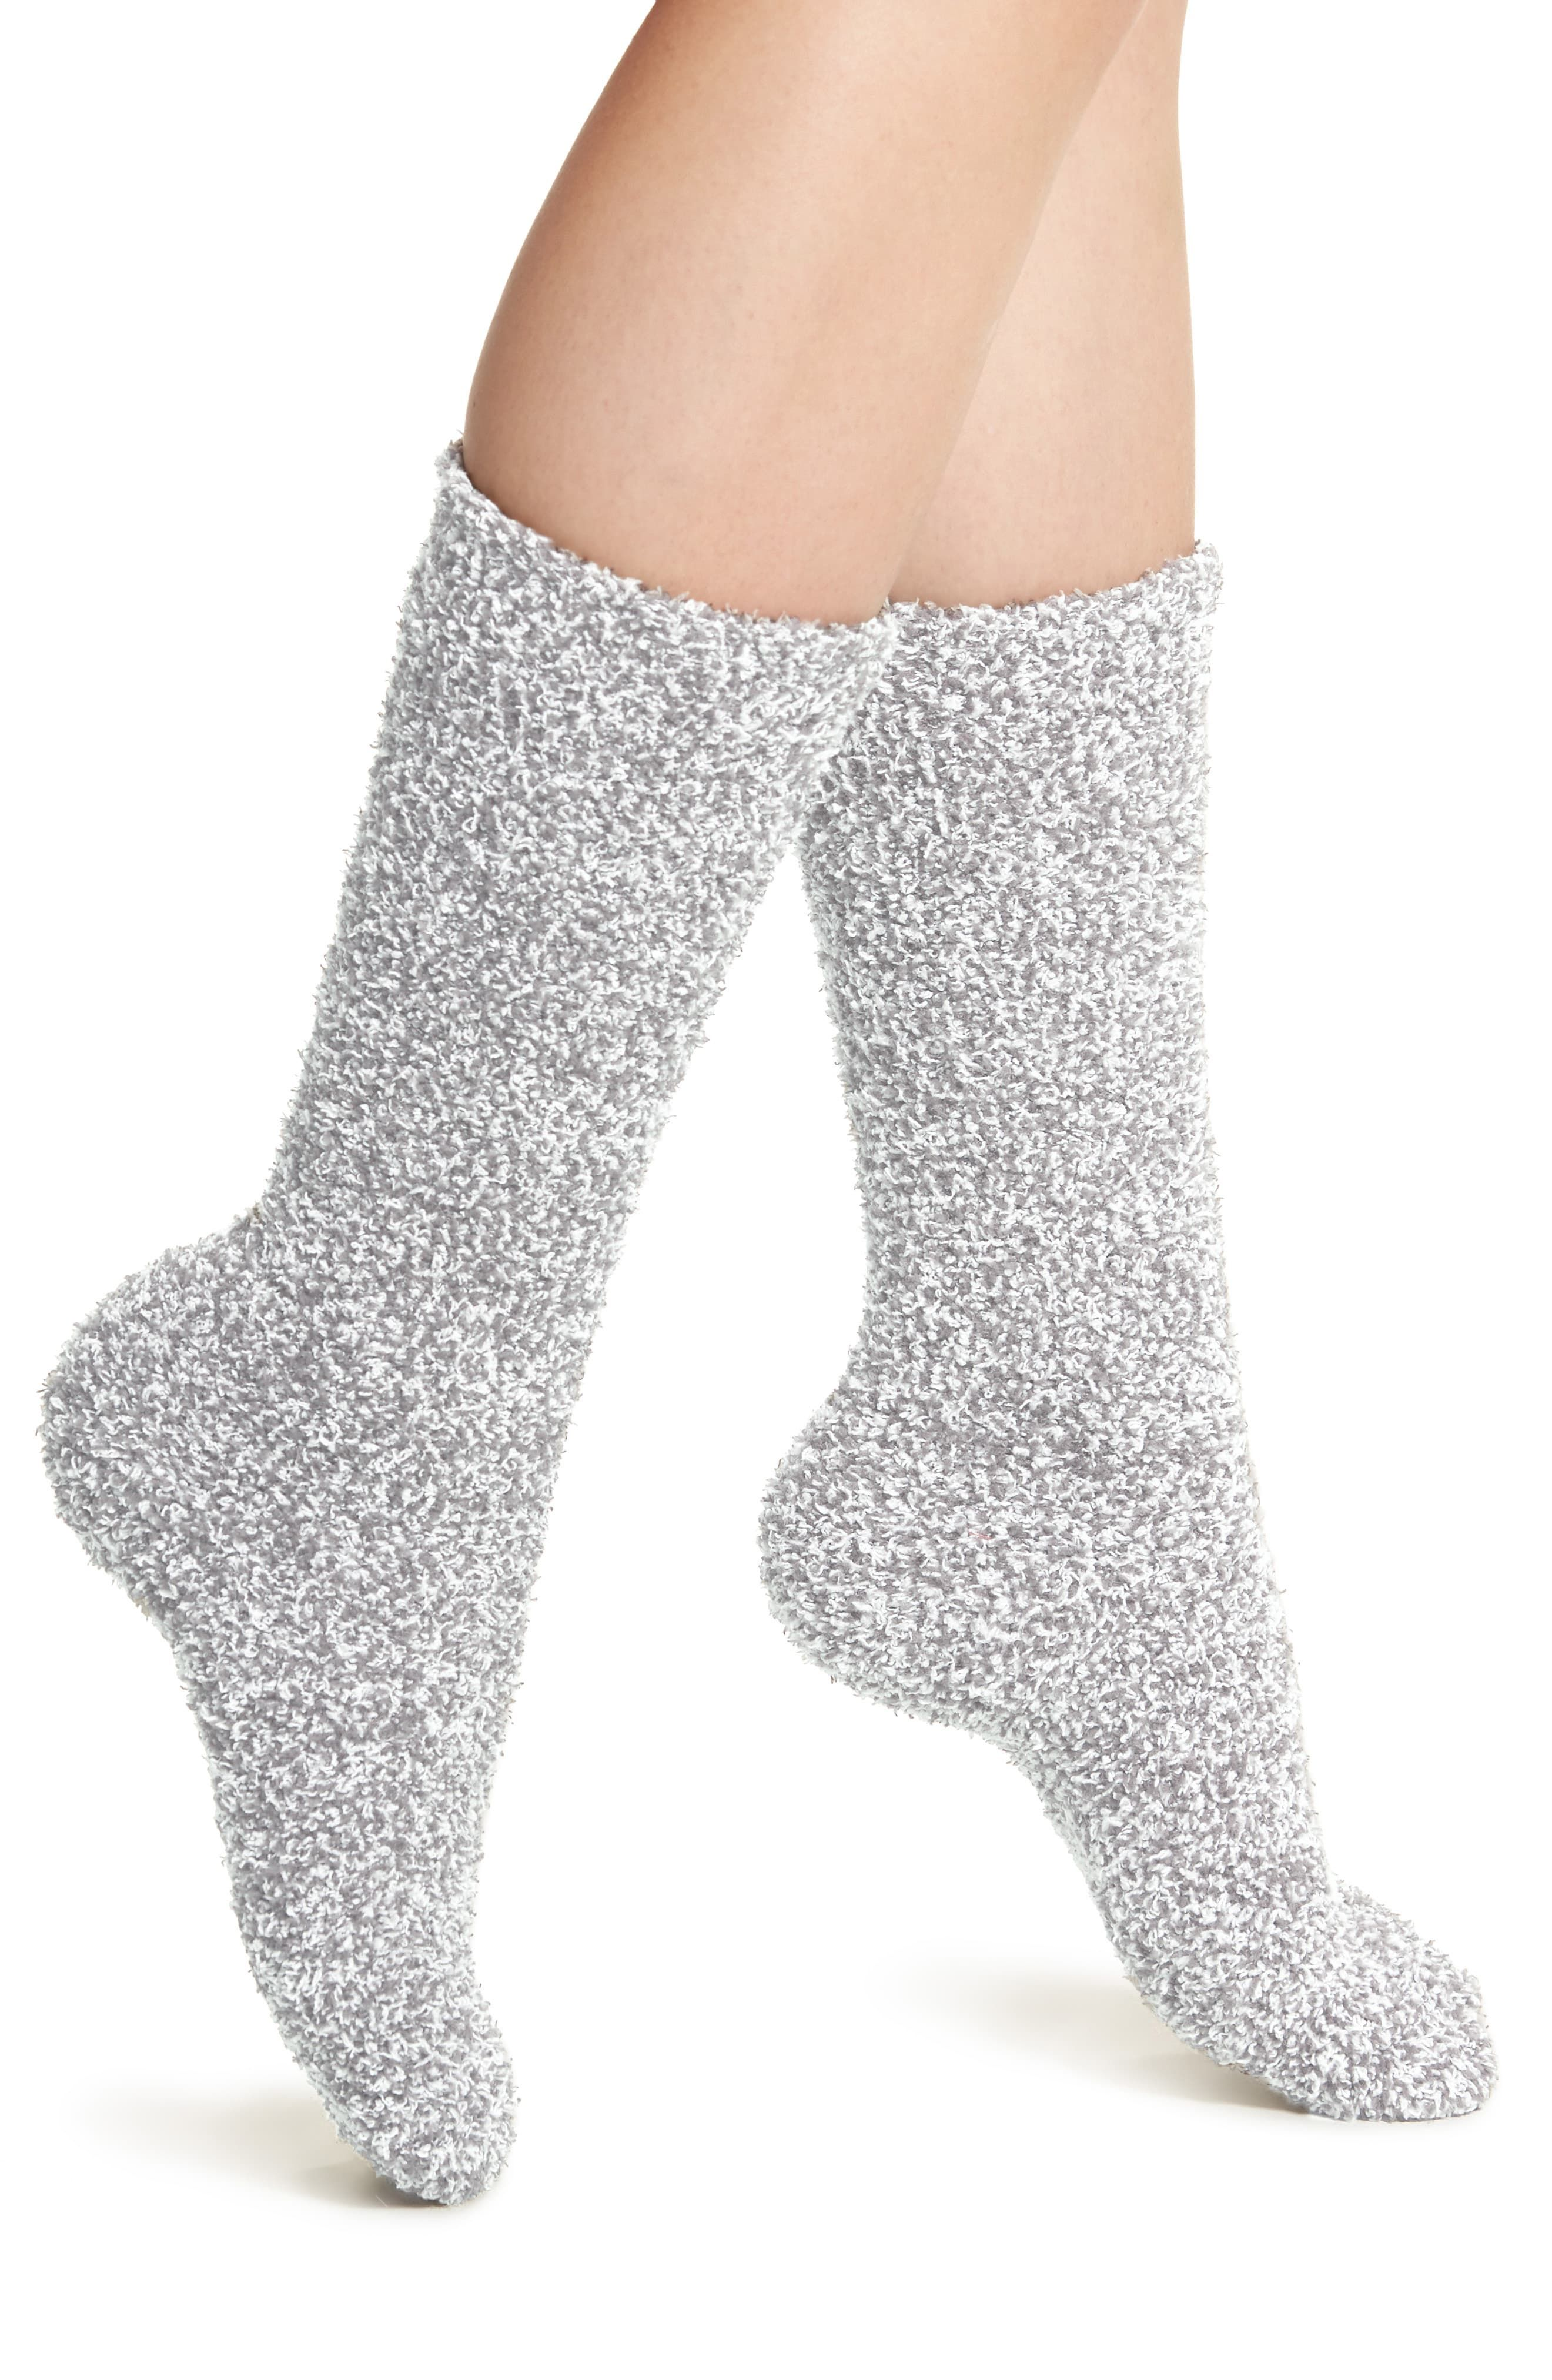 Made from Barefoot Dreams' plush CozyChic knit for ultimate warmth and softness, these socks will become fast down-time favorites. Style Name:Barefoot Dreams Cozychic Socks. Style Number: 5300765_2. Available in stores.